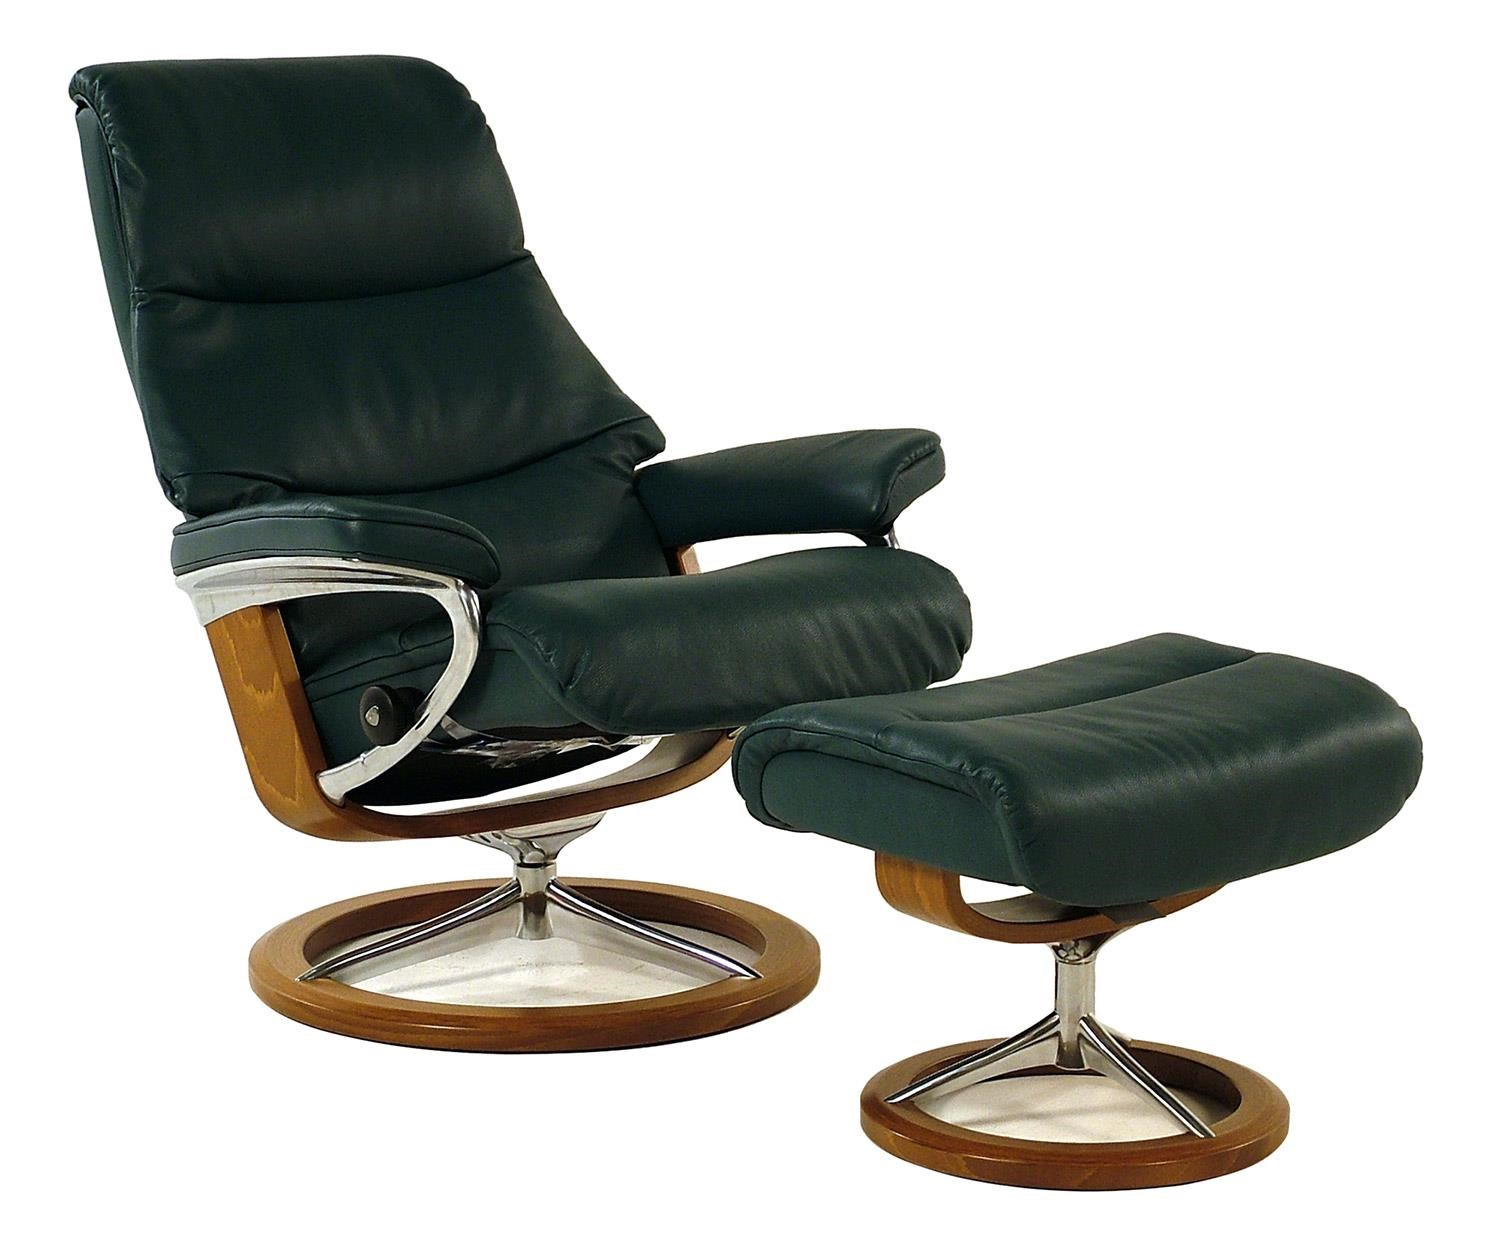 Stressless by Ekornes Stressless Recliners View Medium Recliner u0026 Ottoman Cori Petrol w/ Teak  sc 1 st  Rotmans & Stressless by Ekornes Stressless Recliners View Medium Recliner ... islam-shia.org